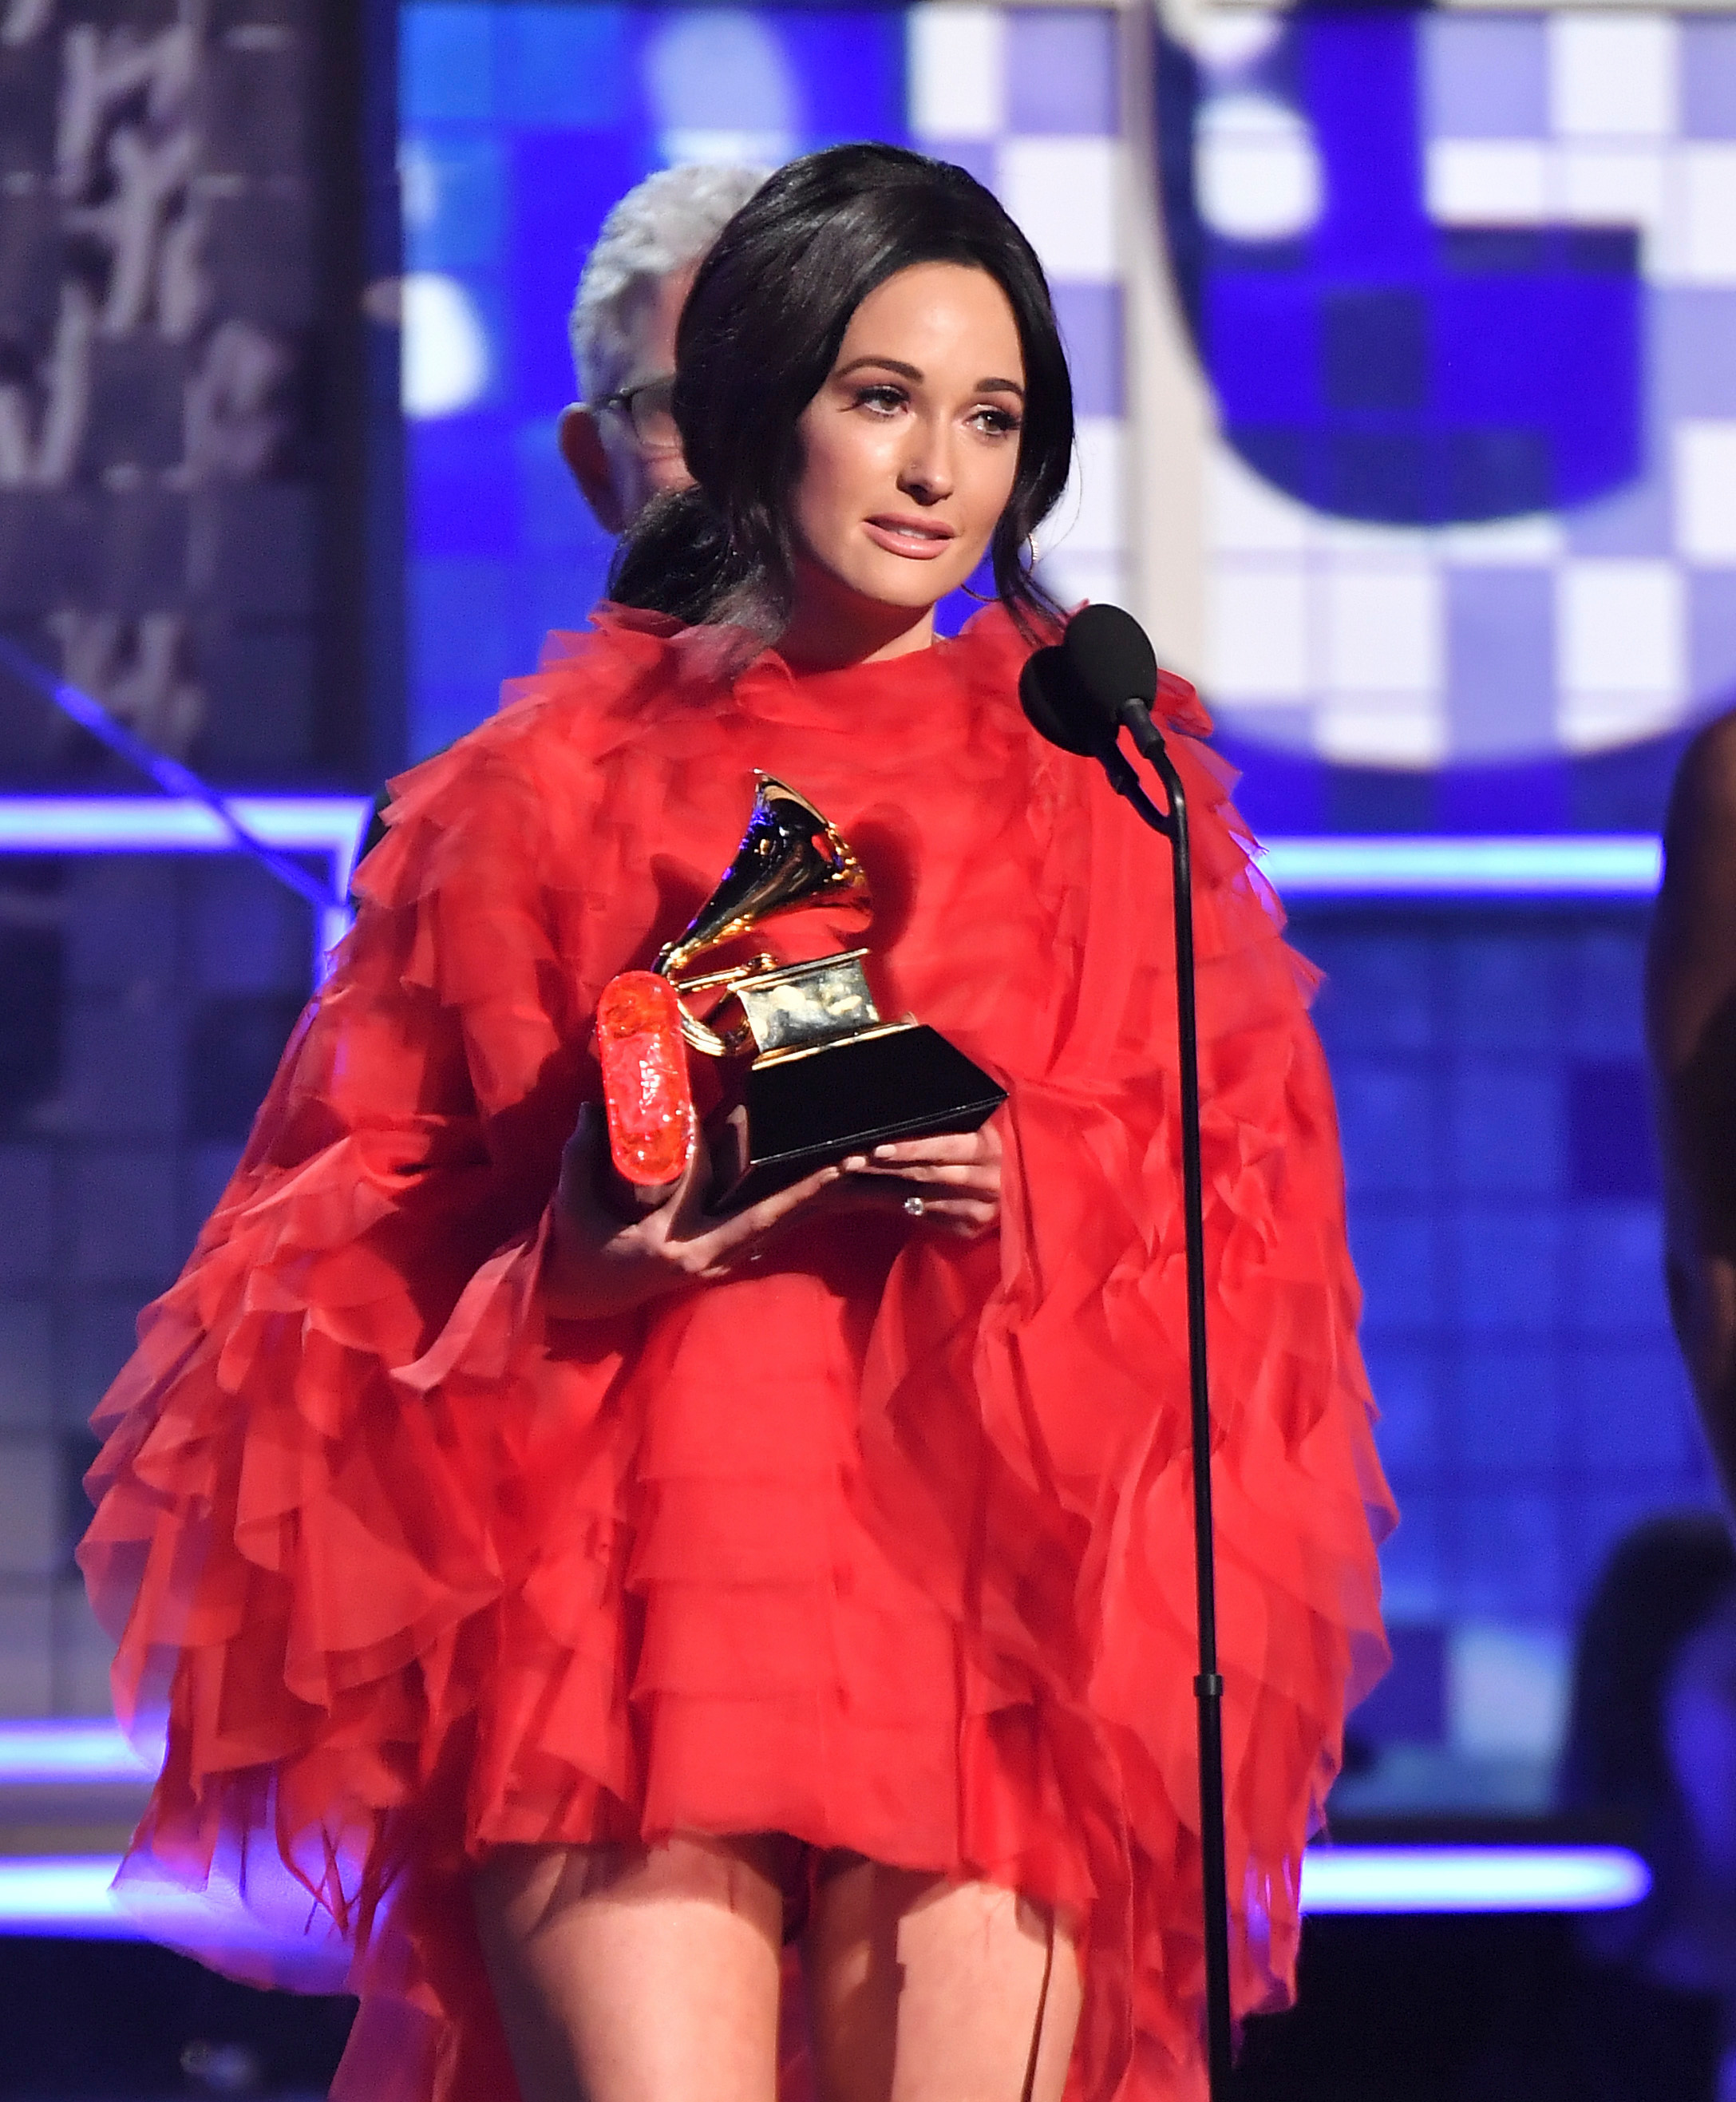 Women reign supreme at the 2019 Grammys